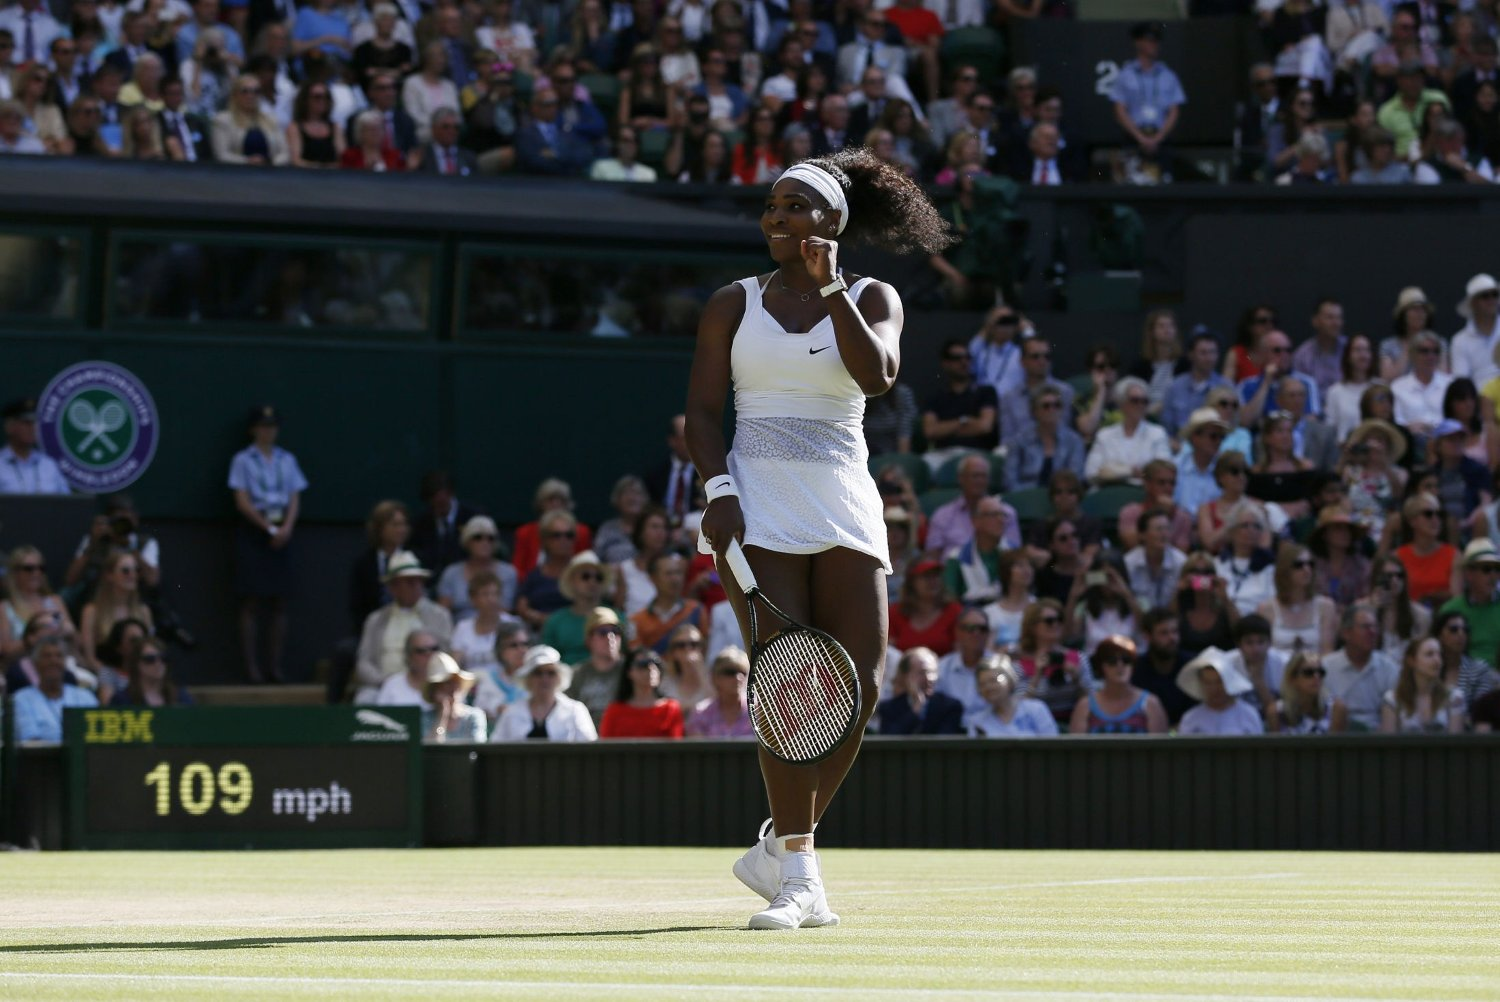 I SLAG: Serena Williams er ustoppelig for tiden.